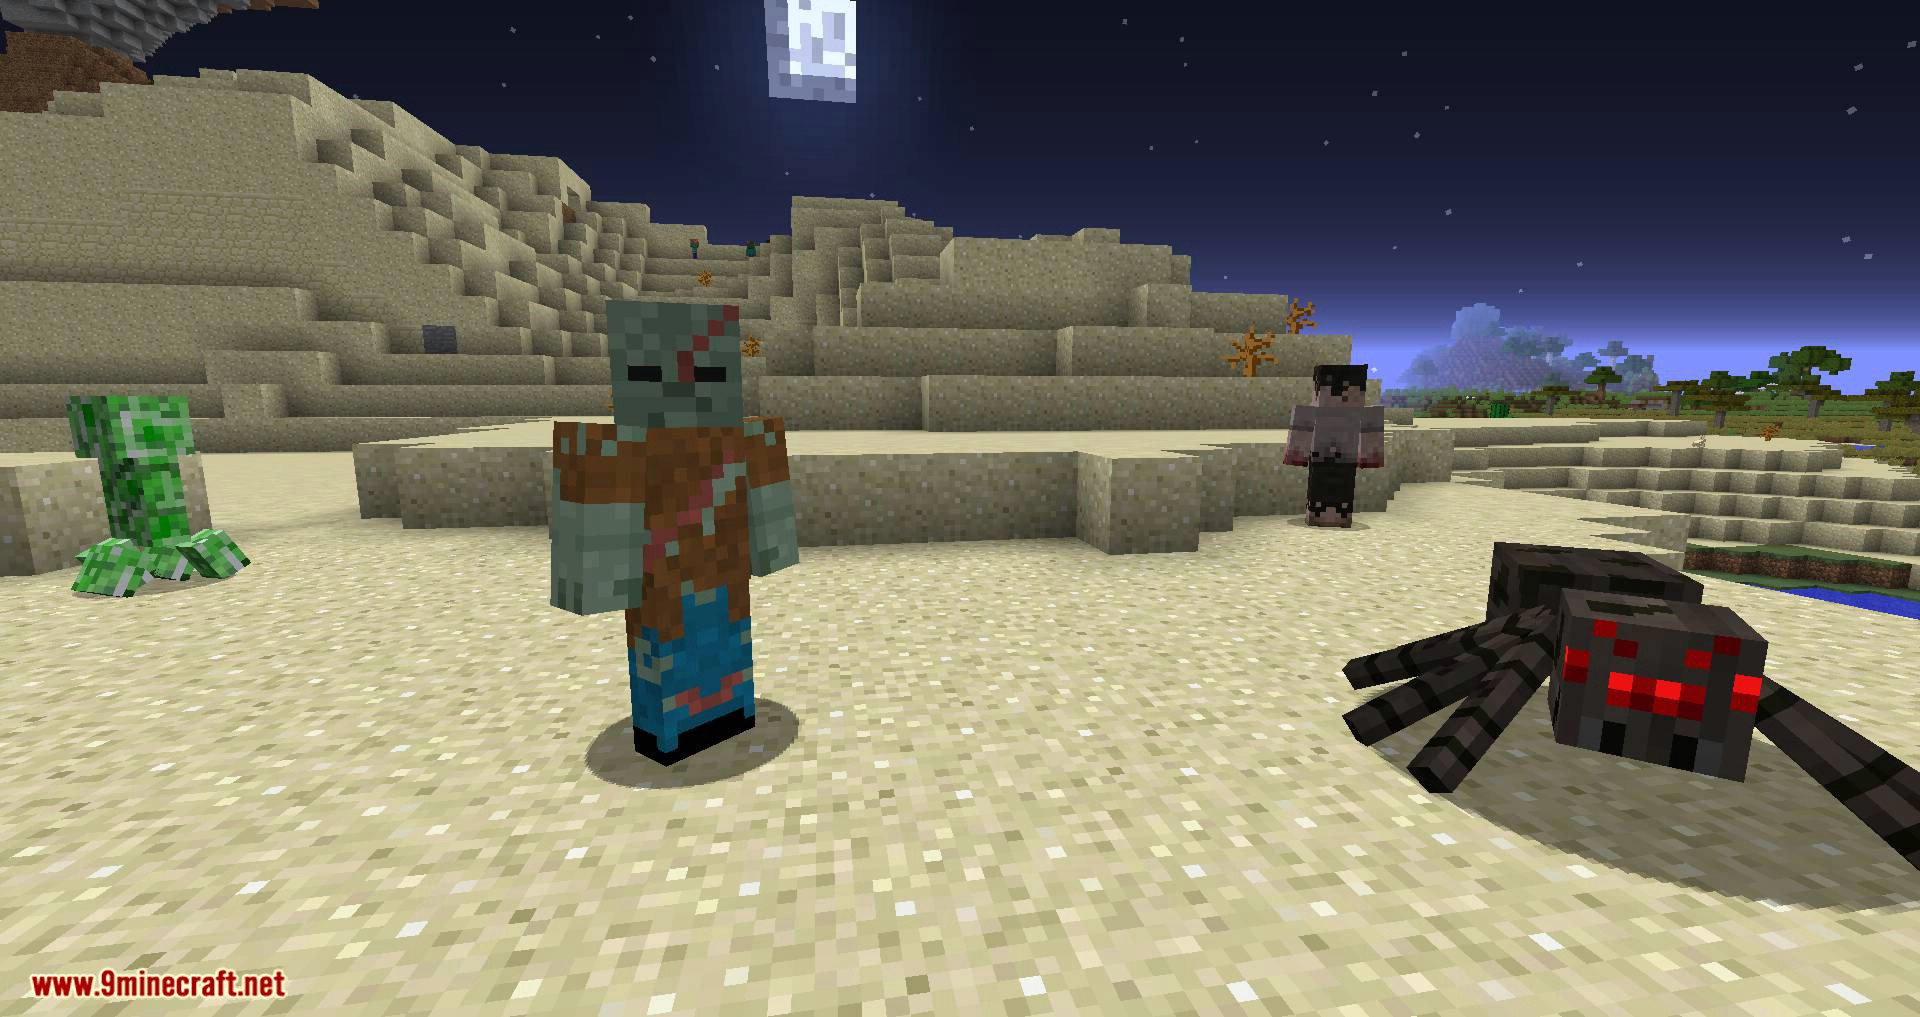 Criogonal_s Zombies Mod for minecraft 07